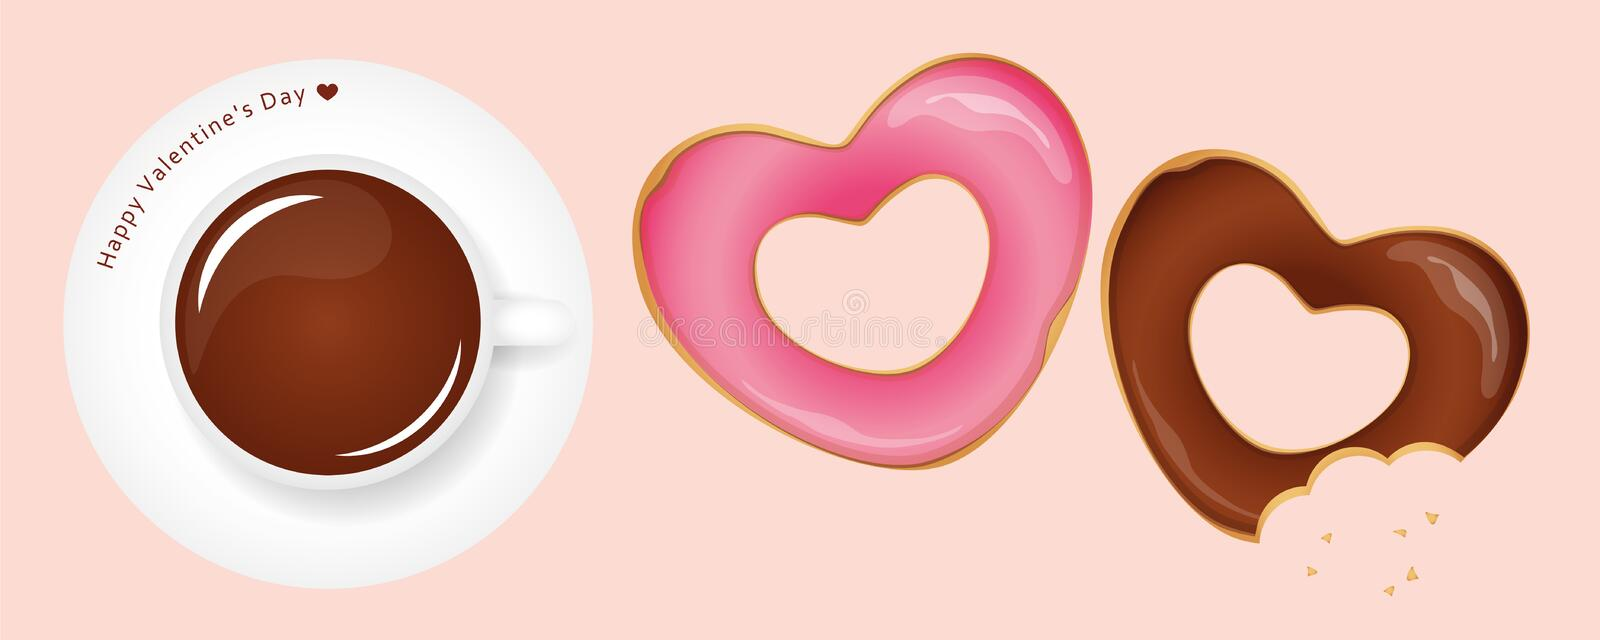 Heart shaped donuts and coffee for valentines day royalty free illustration